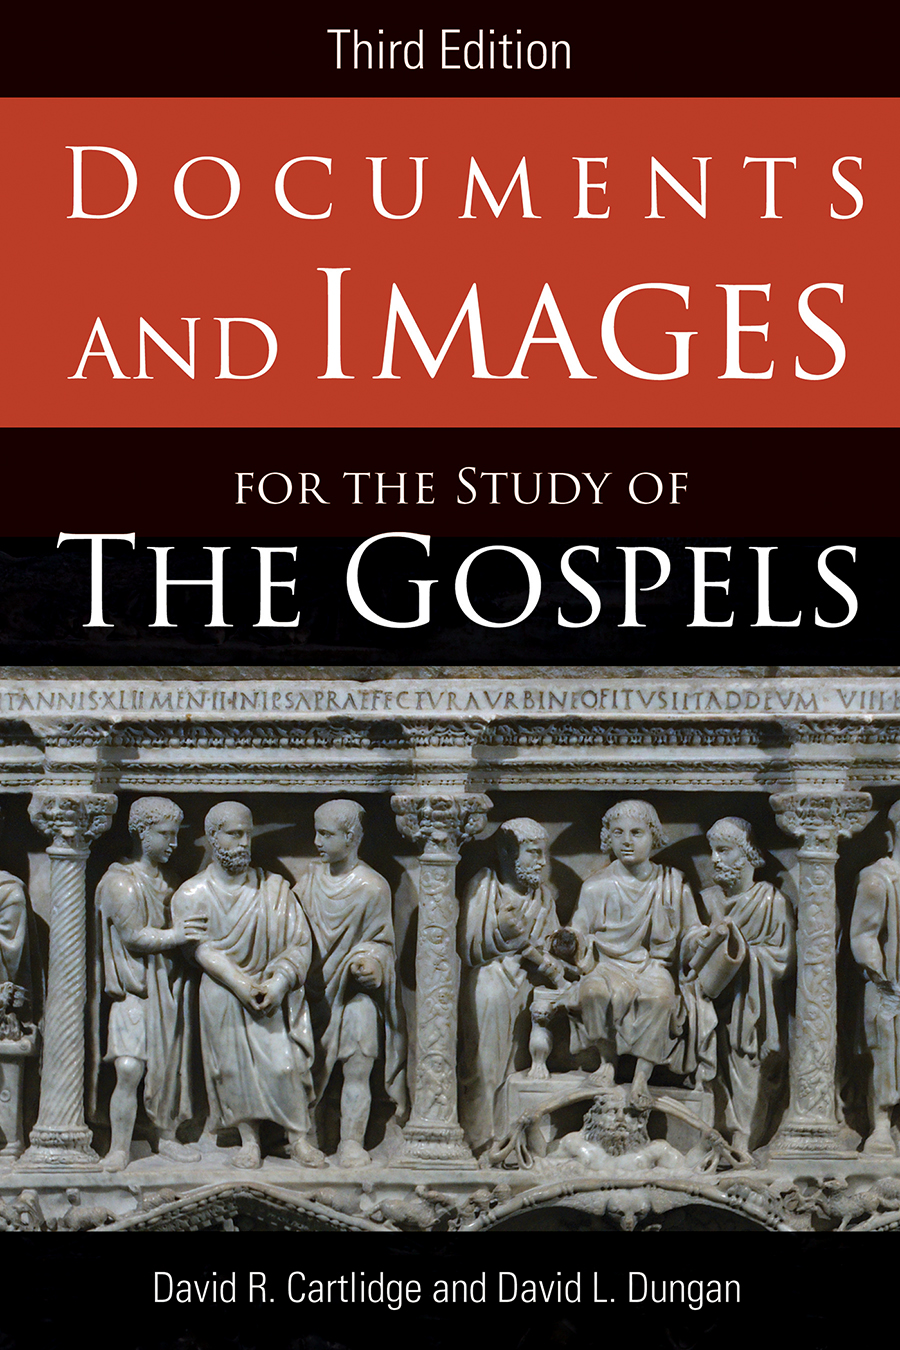 Documents and Images for the Study of the Gospels